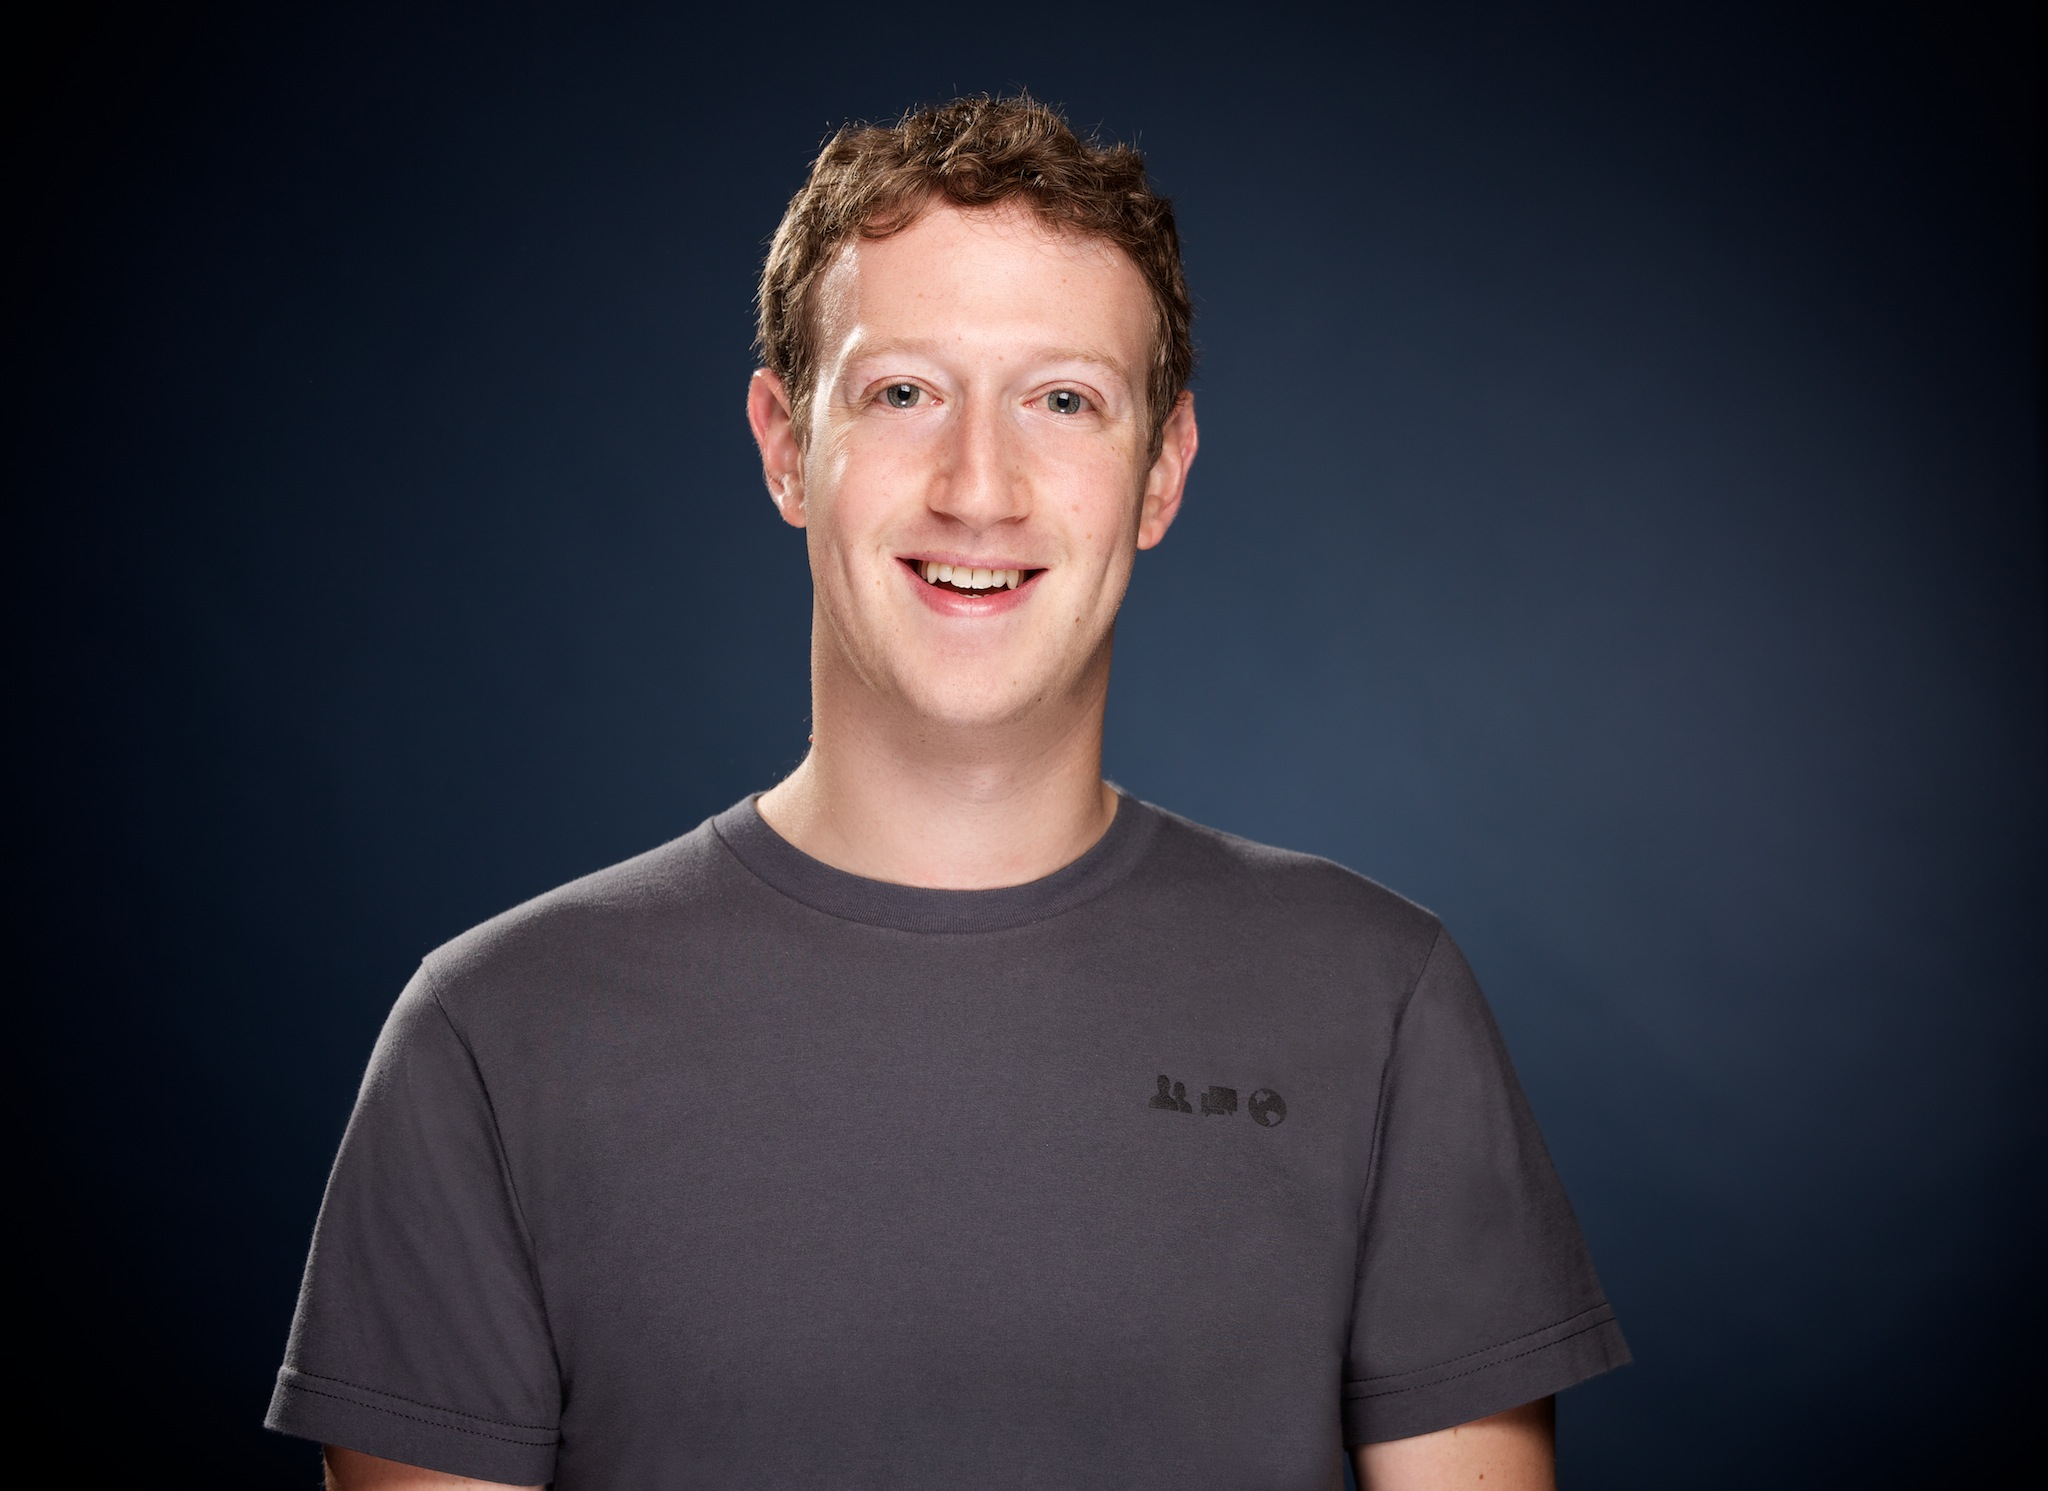 Mark Zuckerberg and donating billions